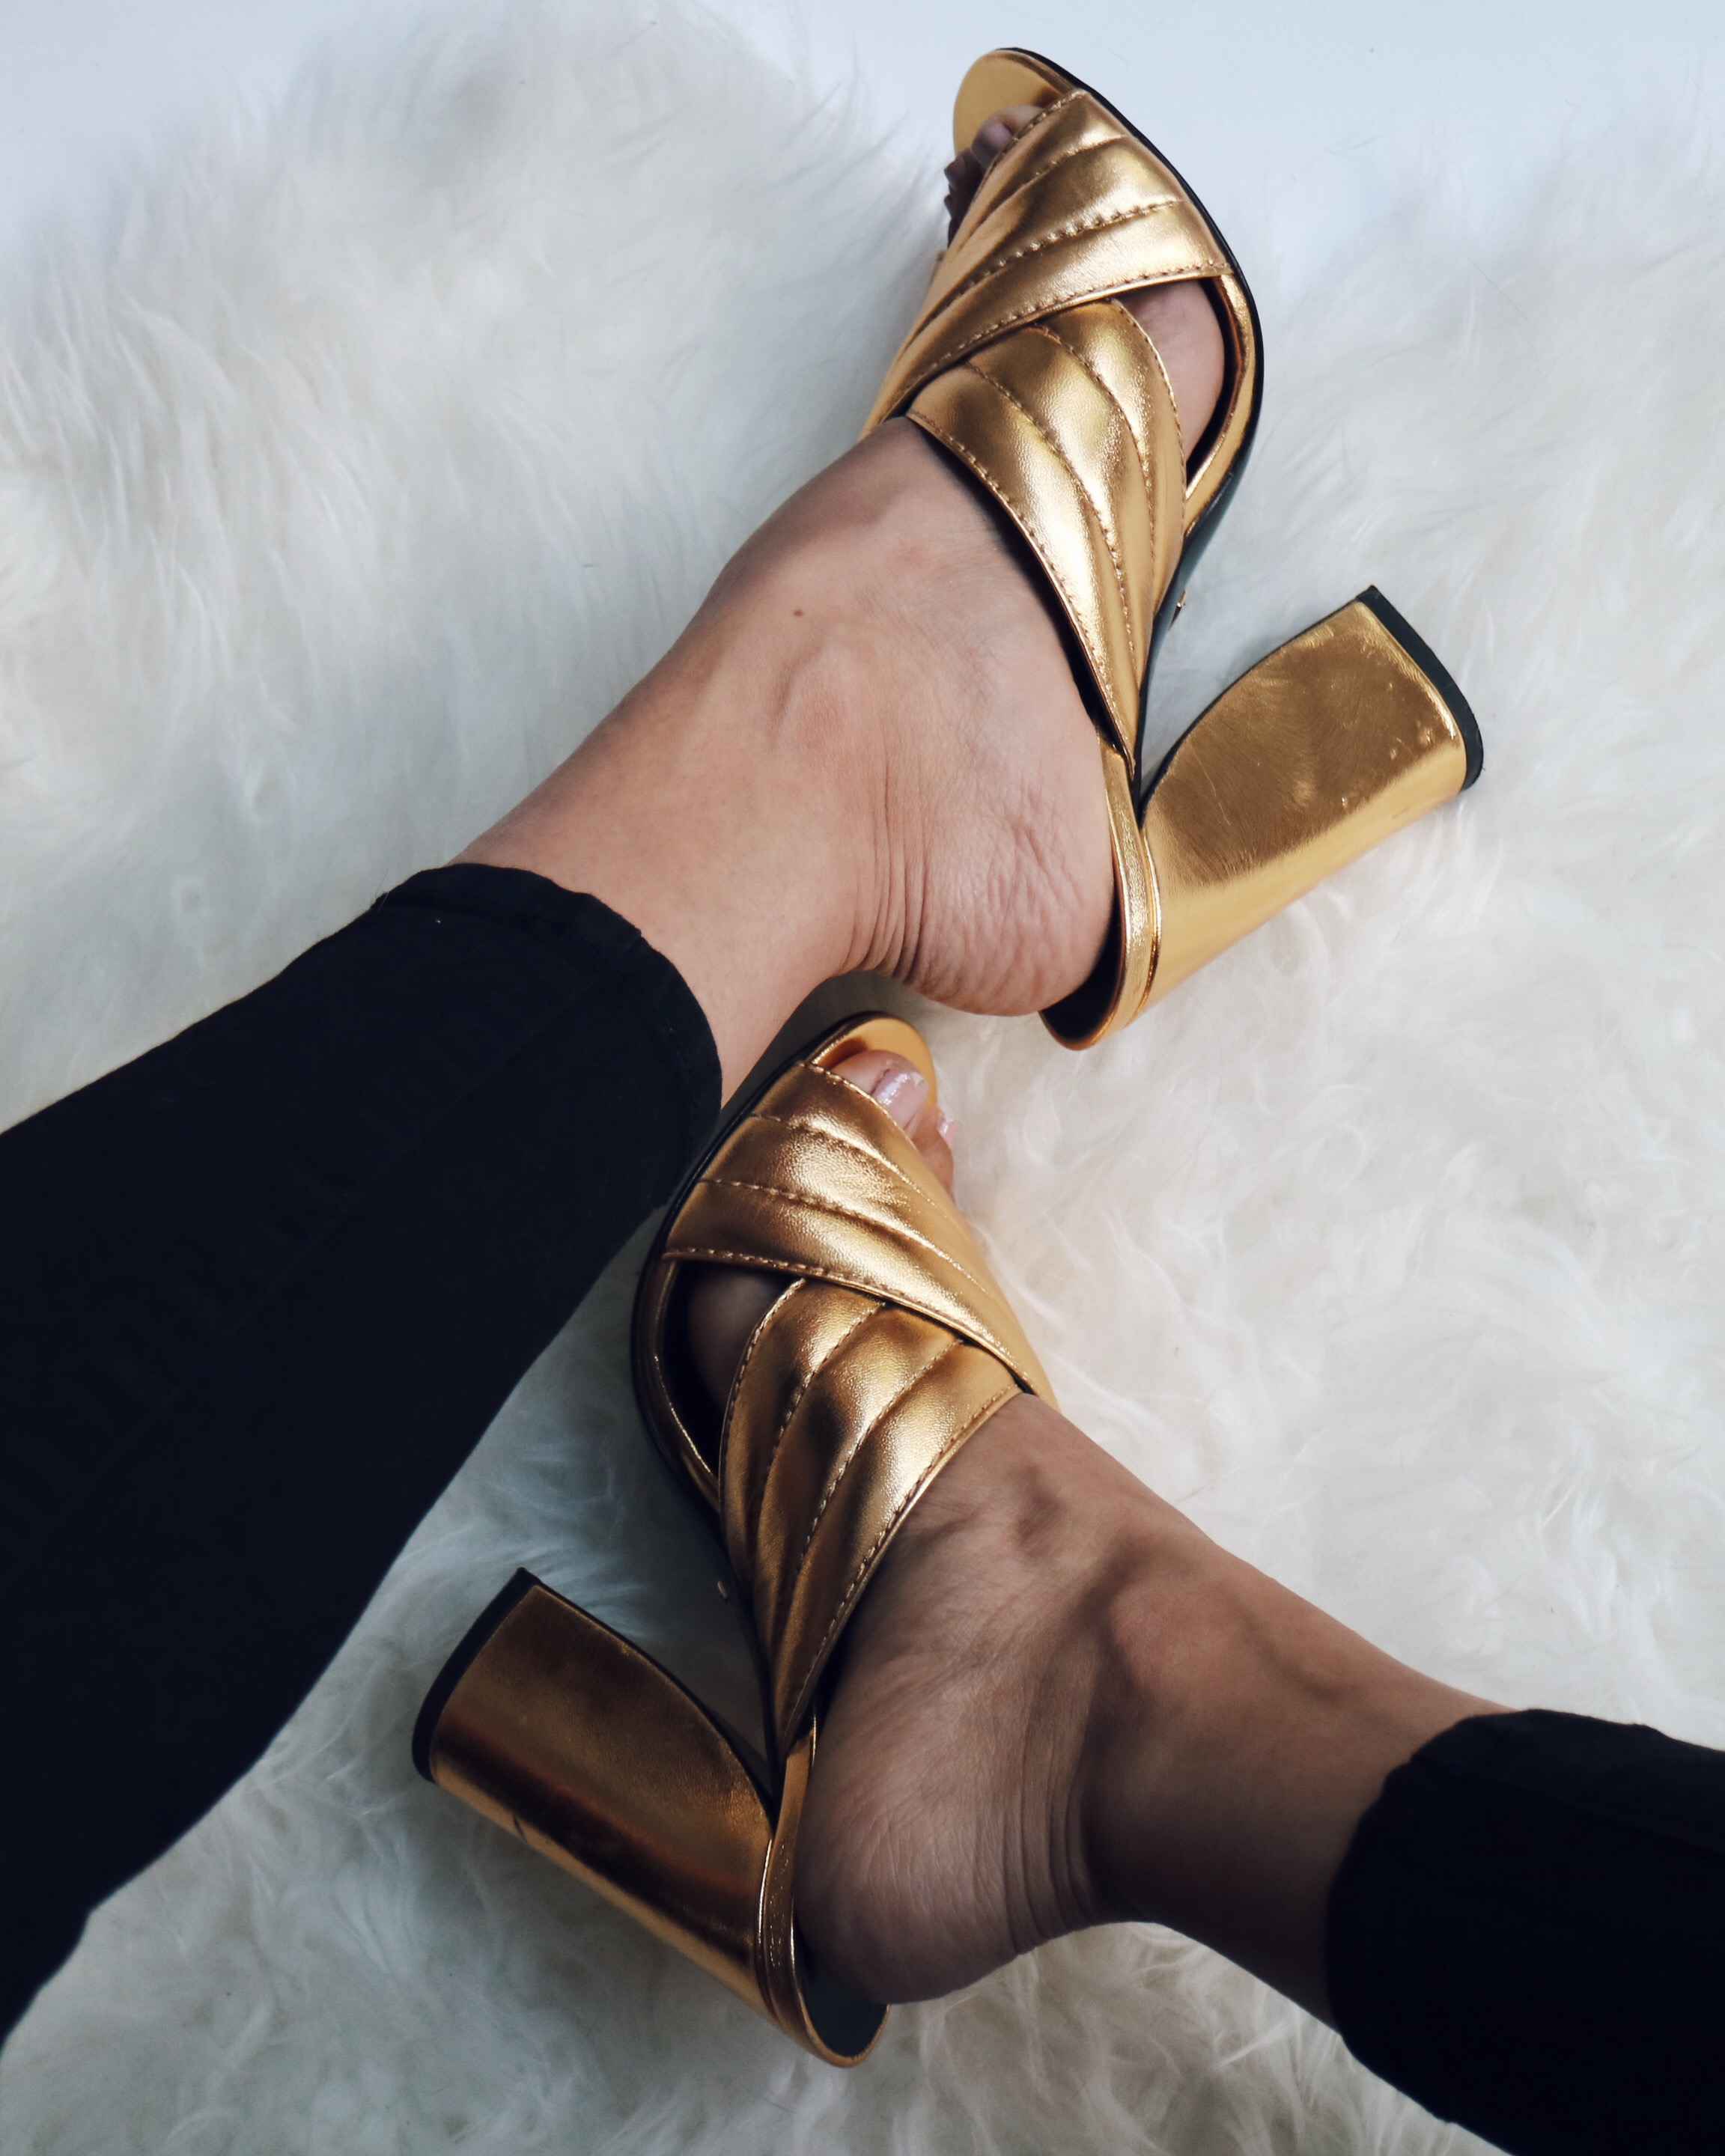 f6184873ad GUCCI SHOE HAUL, REVIEWS & METALLIC SHOE TRENDS FOR FALL — WOAHSTYLE